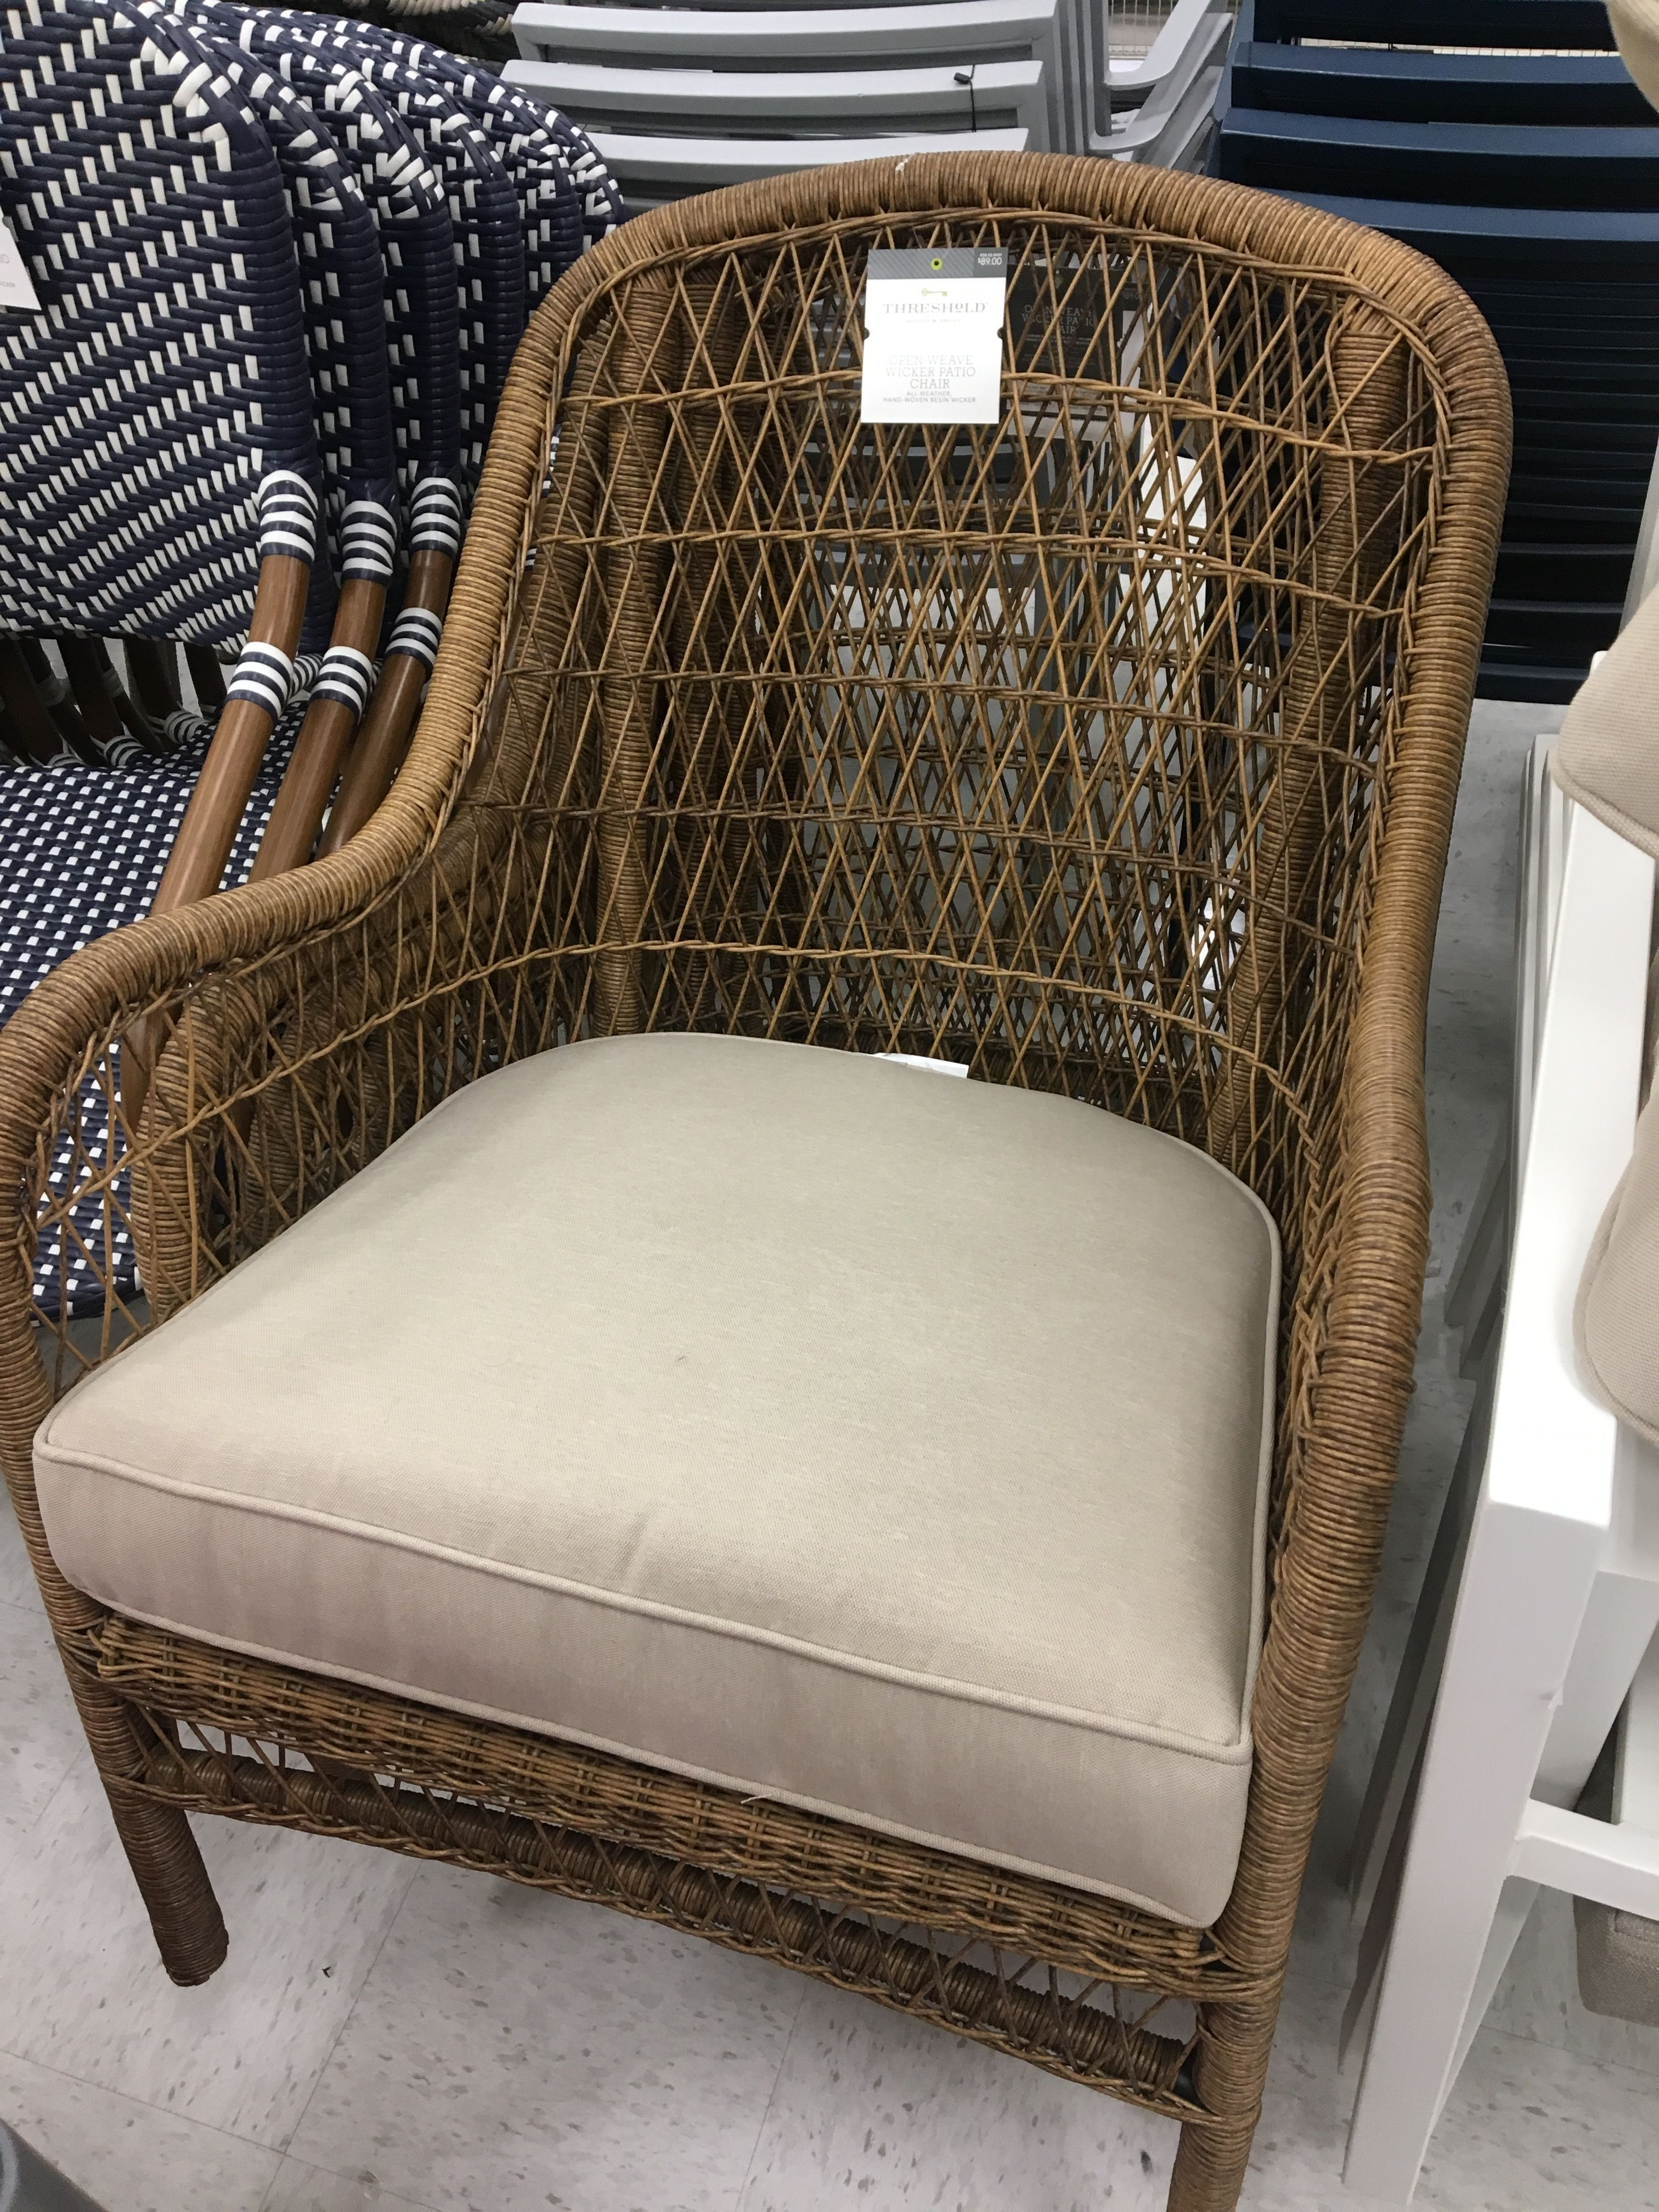 New Target Patio Furniture Love The Wicker Chairs Target Patio Furniture Patio Furniture Cushions Comfortable Patio Furniture